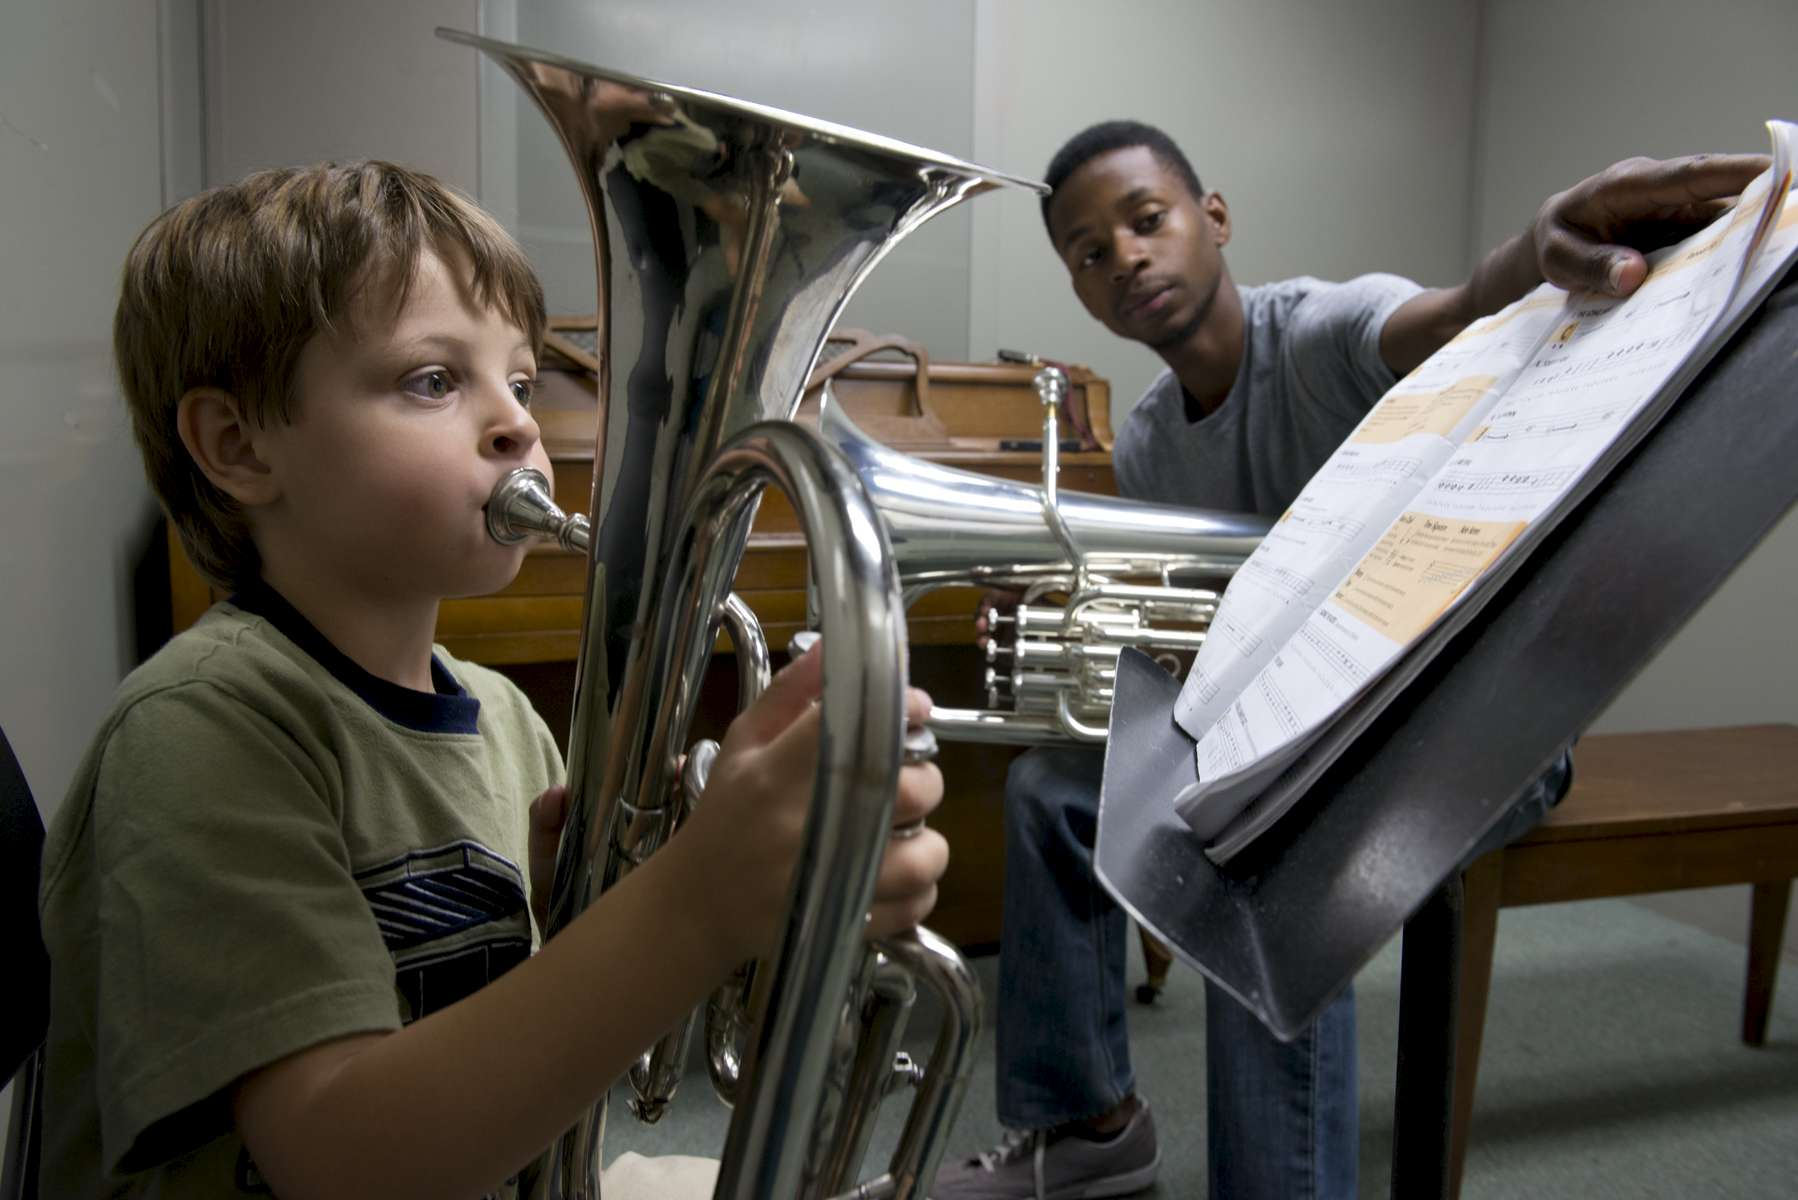 Justin Pierce, a music performance major at Elon University, teaches community members in his spare time.